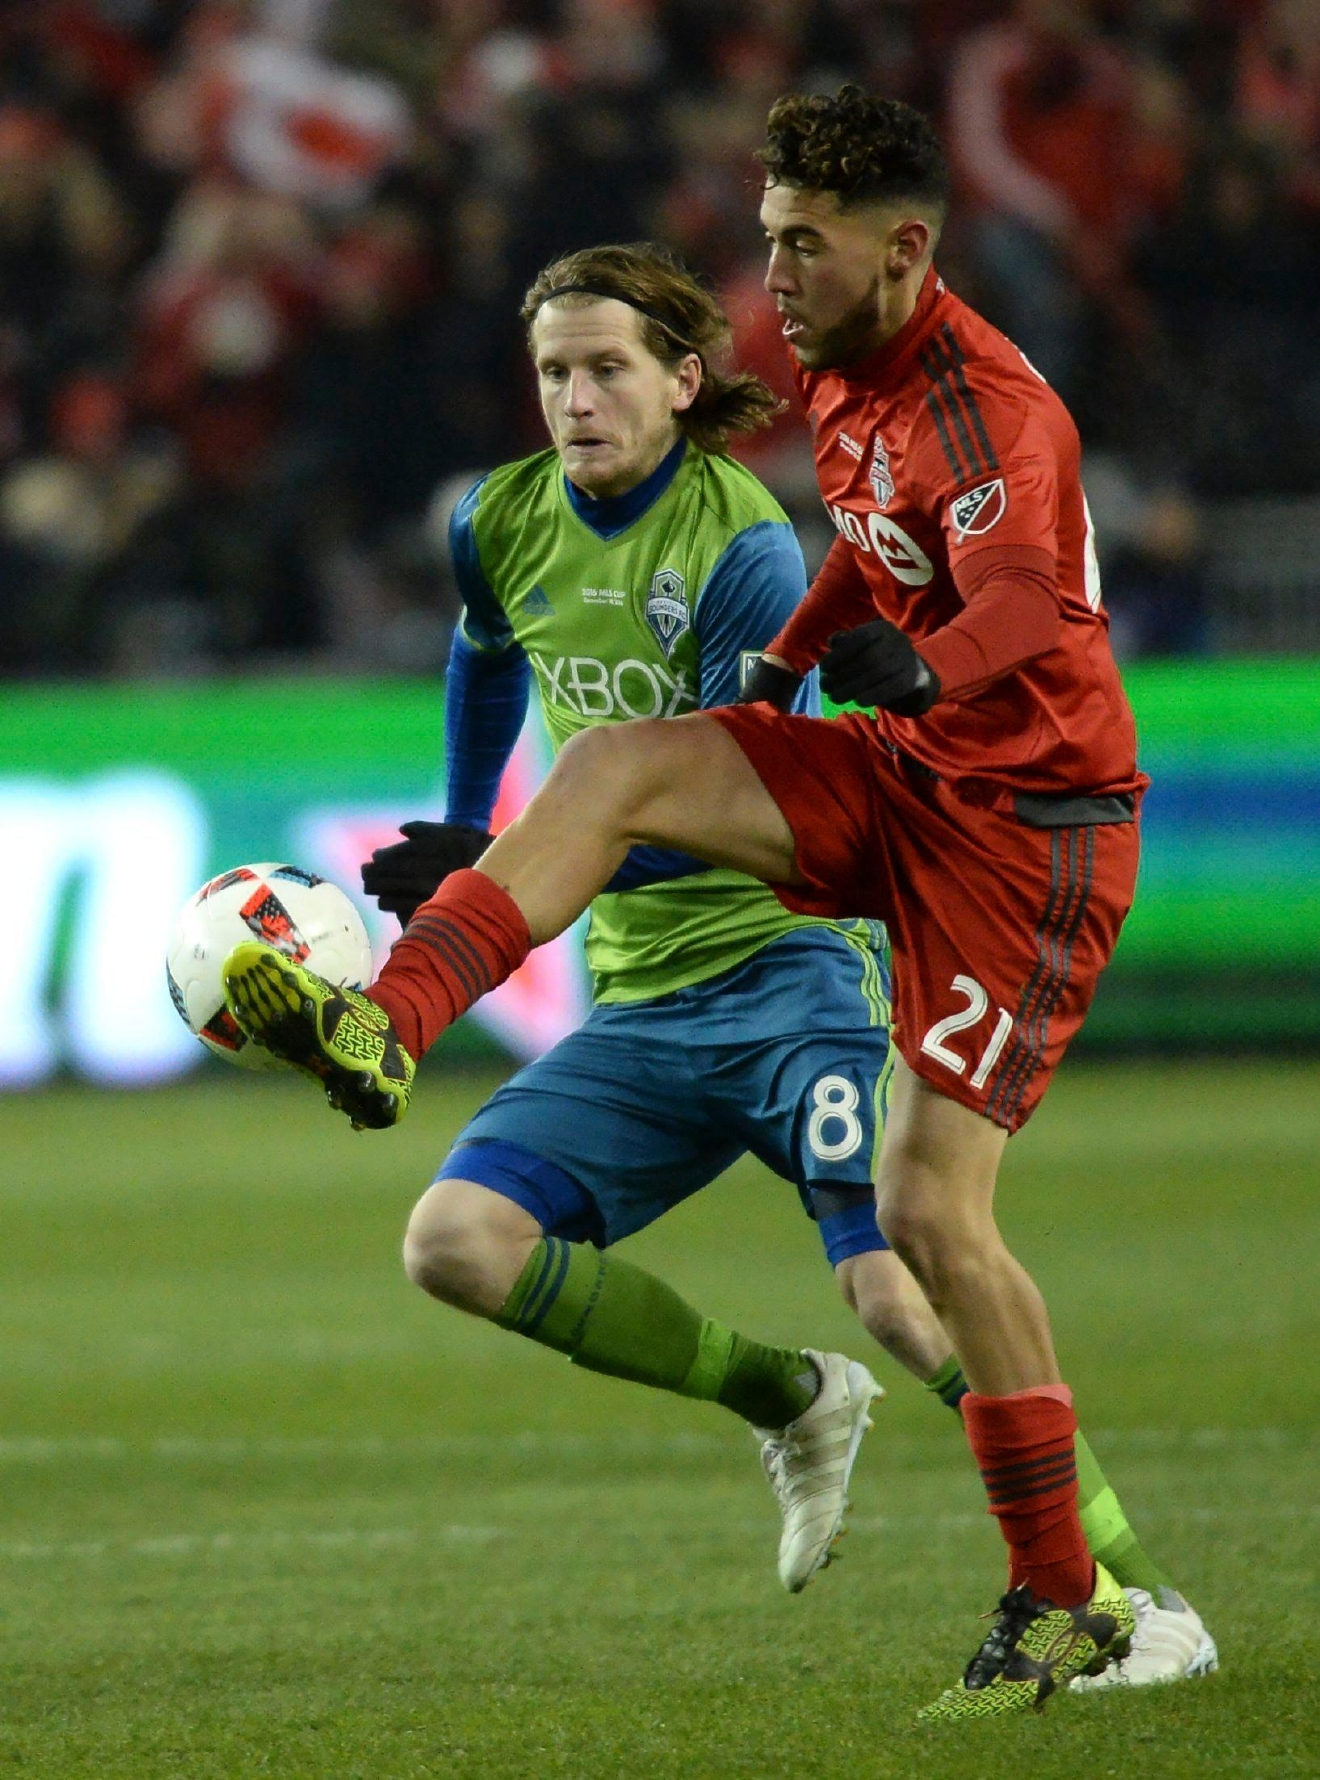 Toronto FC midfielder Jonathan Osorio (21) plays the ball as Seattle Sounders midfielder Erik Friberg (8) looks on during first-half MLS Cup final soccer action in Toronto, Saturday, Dec. 10, 2016. (Nathan Denette/The Canadian Press via AP)